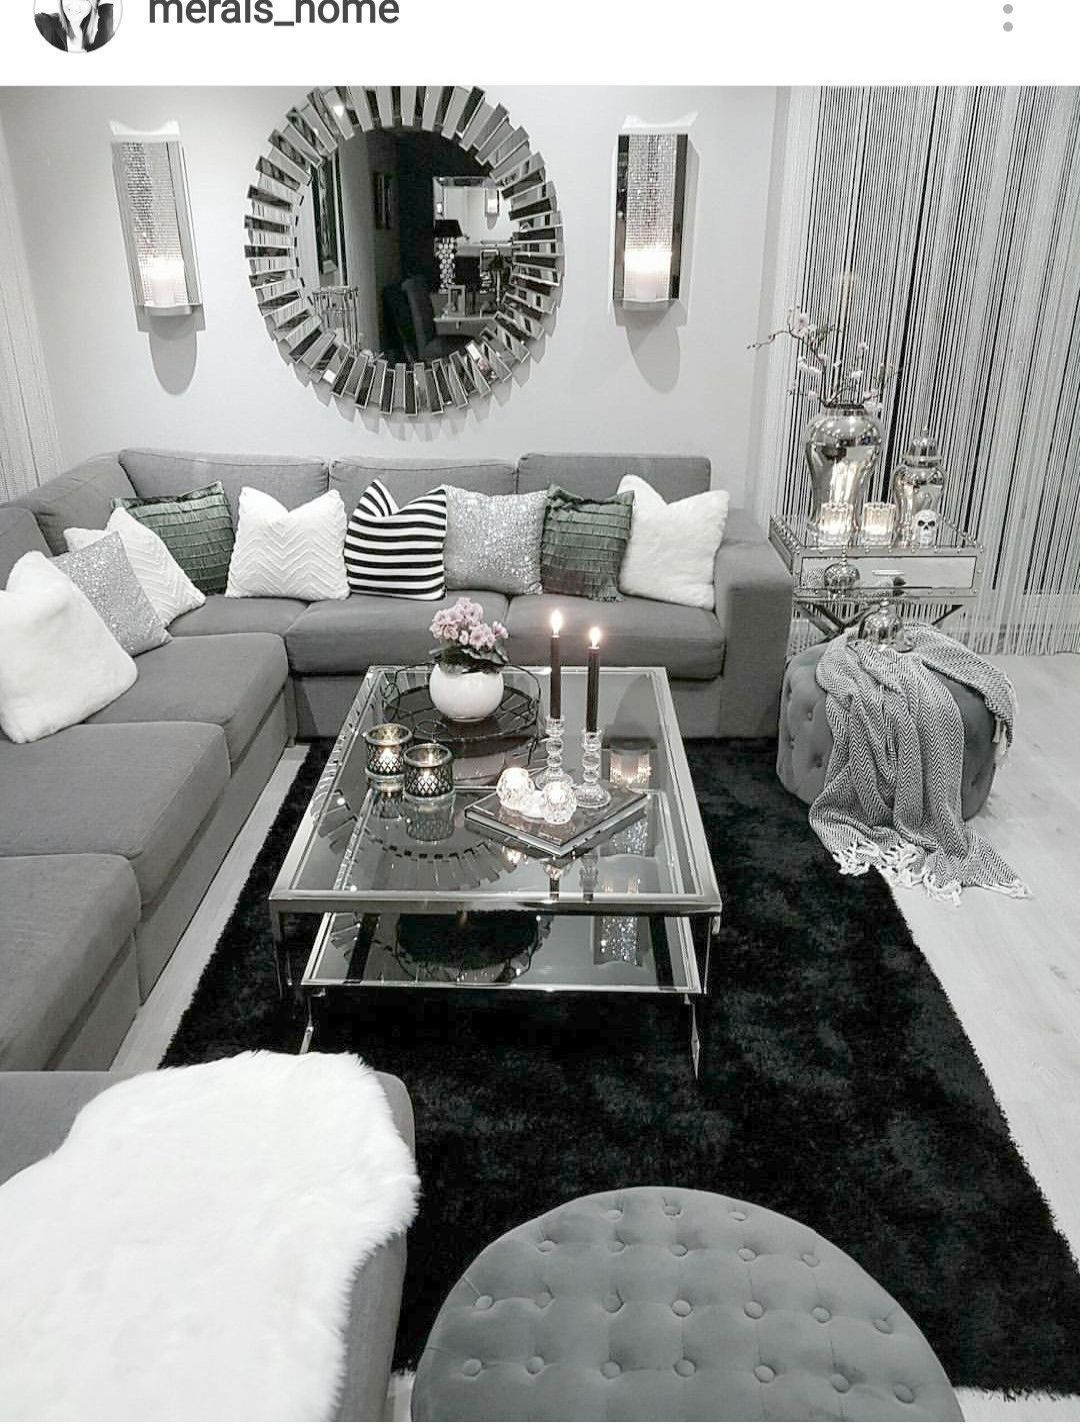 Home Decor Ideas On A Budget Pinterest Up Home Decor Ideas Small Dining Room Underneath Spring H Living Room Grey Living Room Decor Apartment Cozy Living Rooms